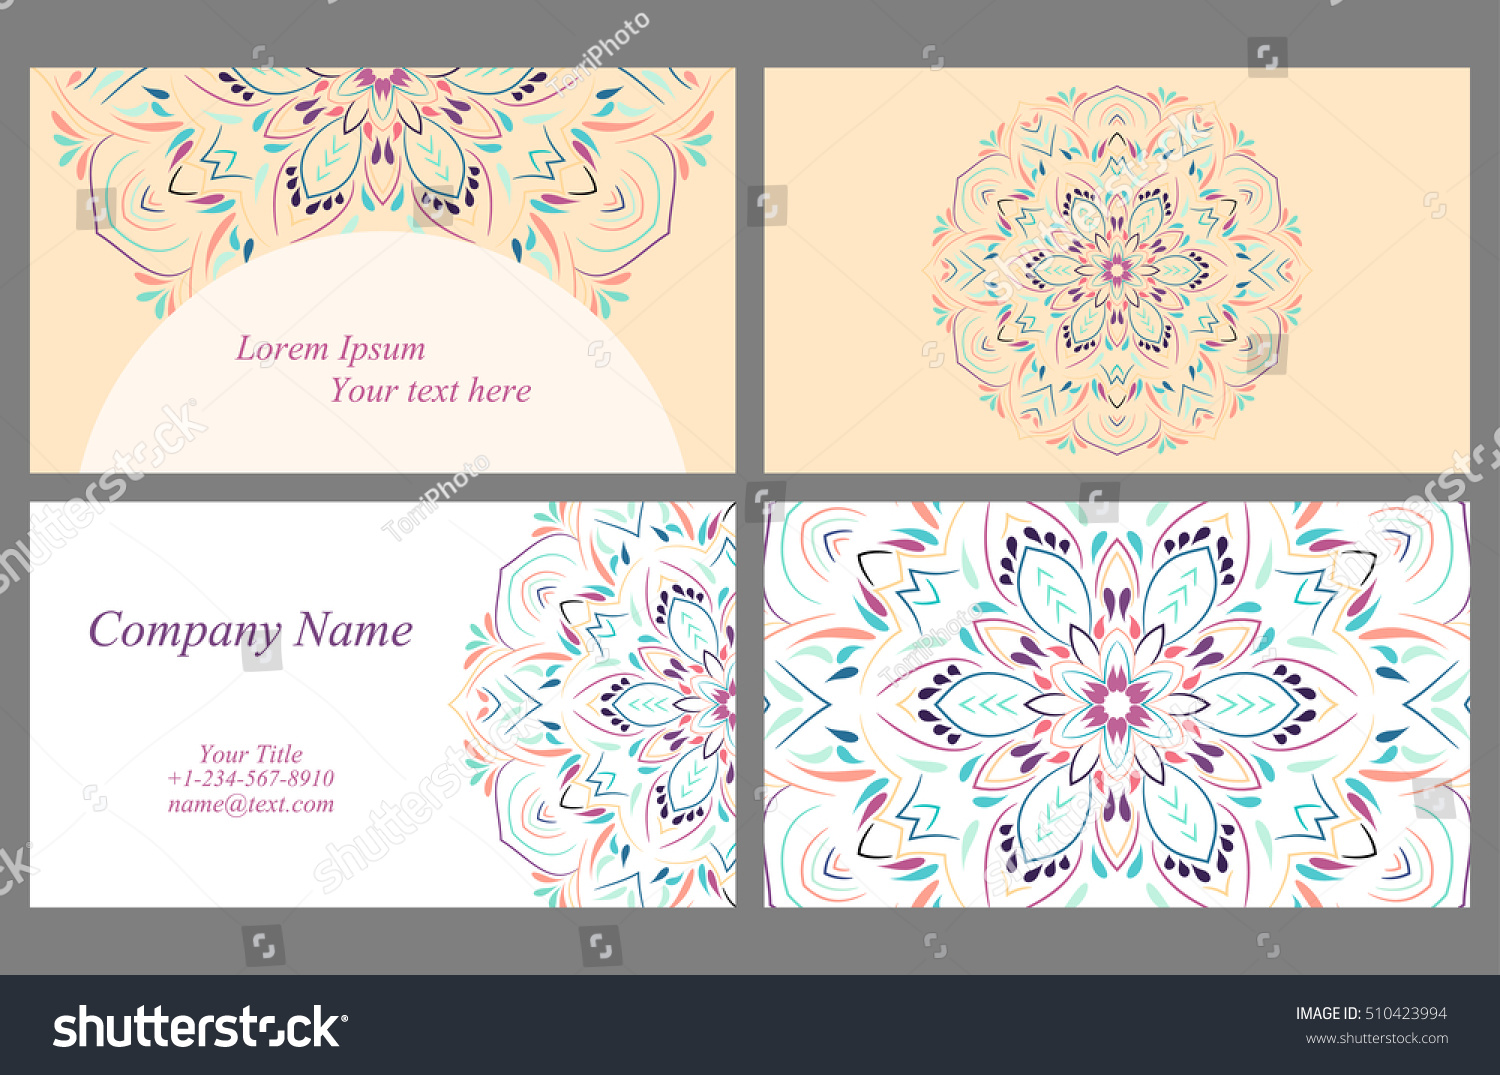 https://www.shutterstock.com/pic-510423994/stock-vector-set-of-elegance-pastel-colored-business-card-or-invitation-templates-with-abstract-floral-design-vector-illustration-eps-8.html